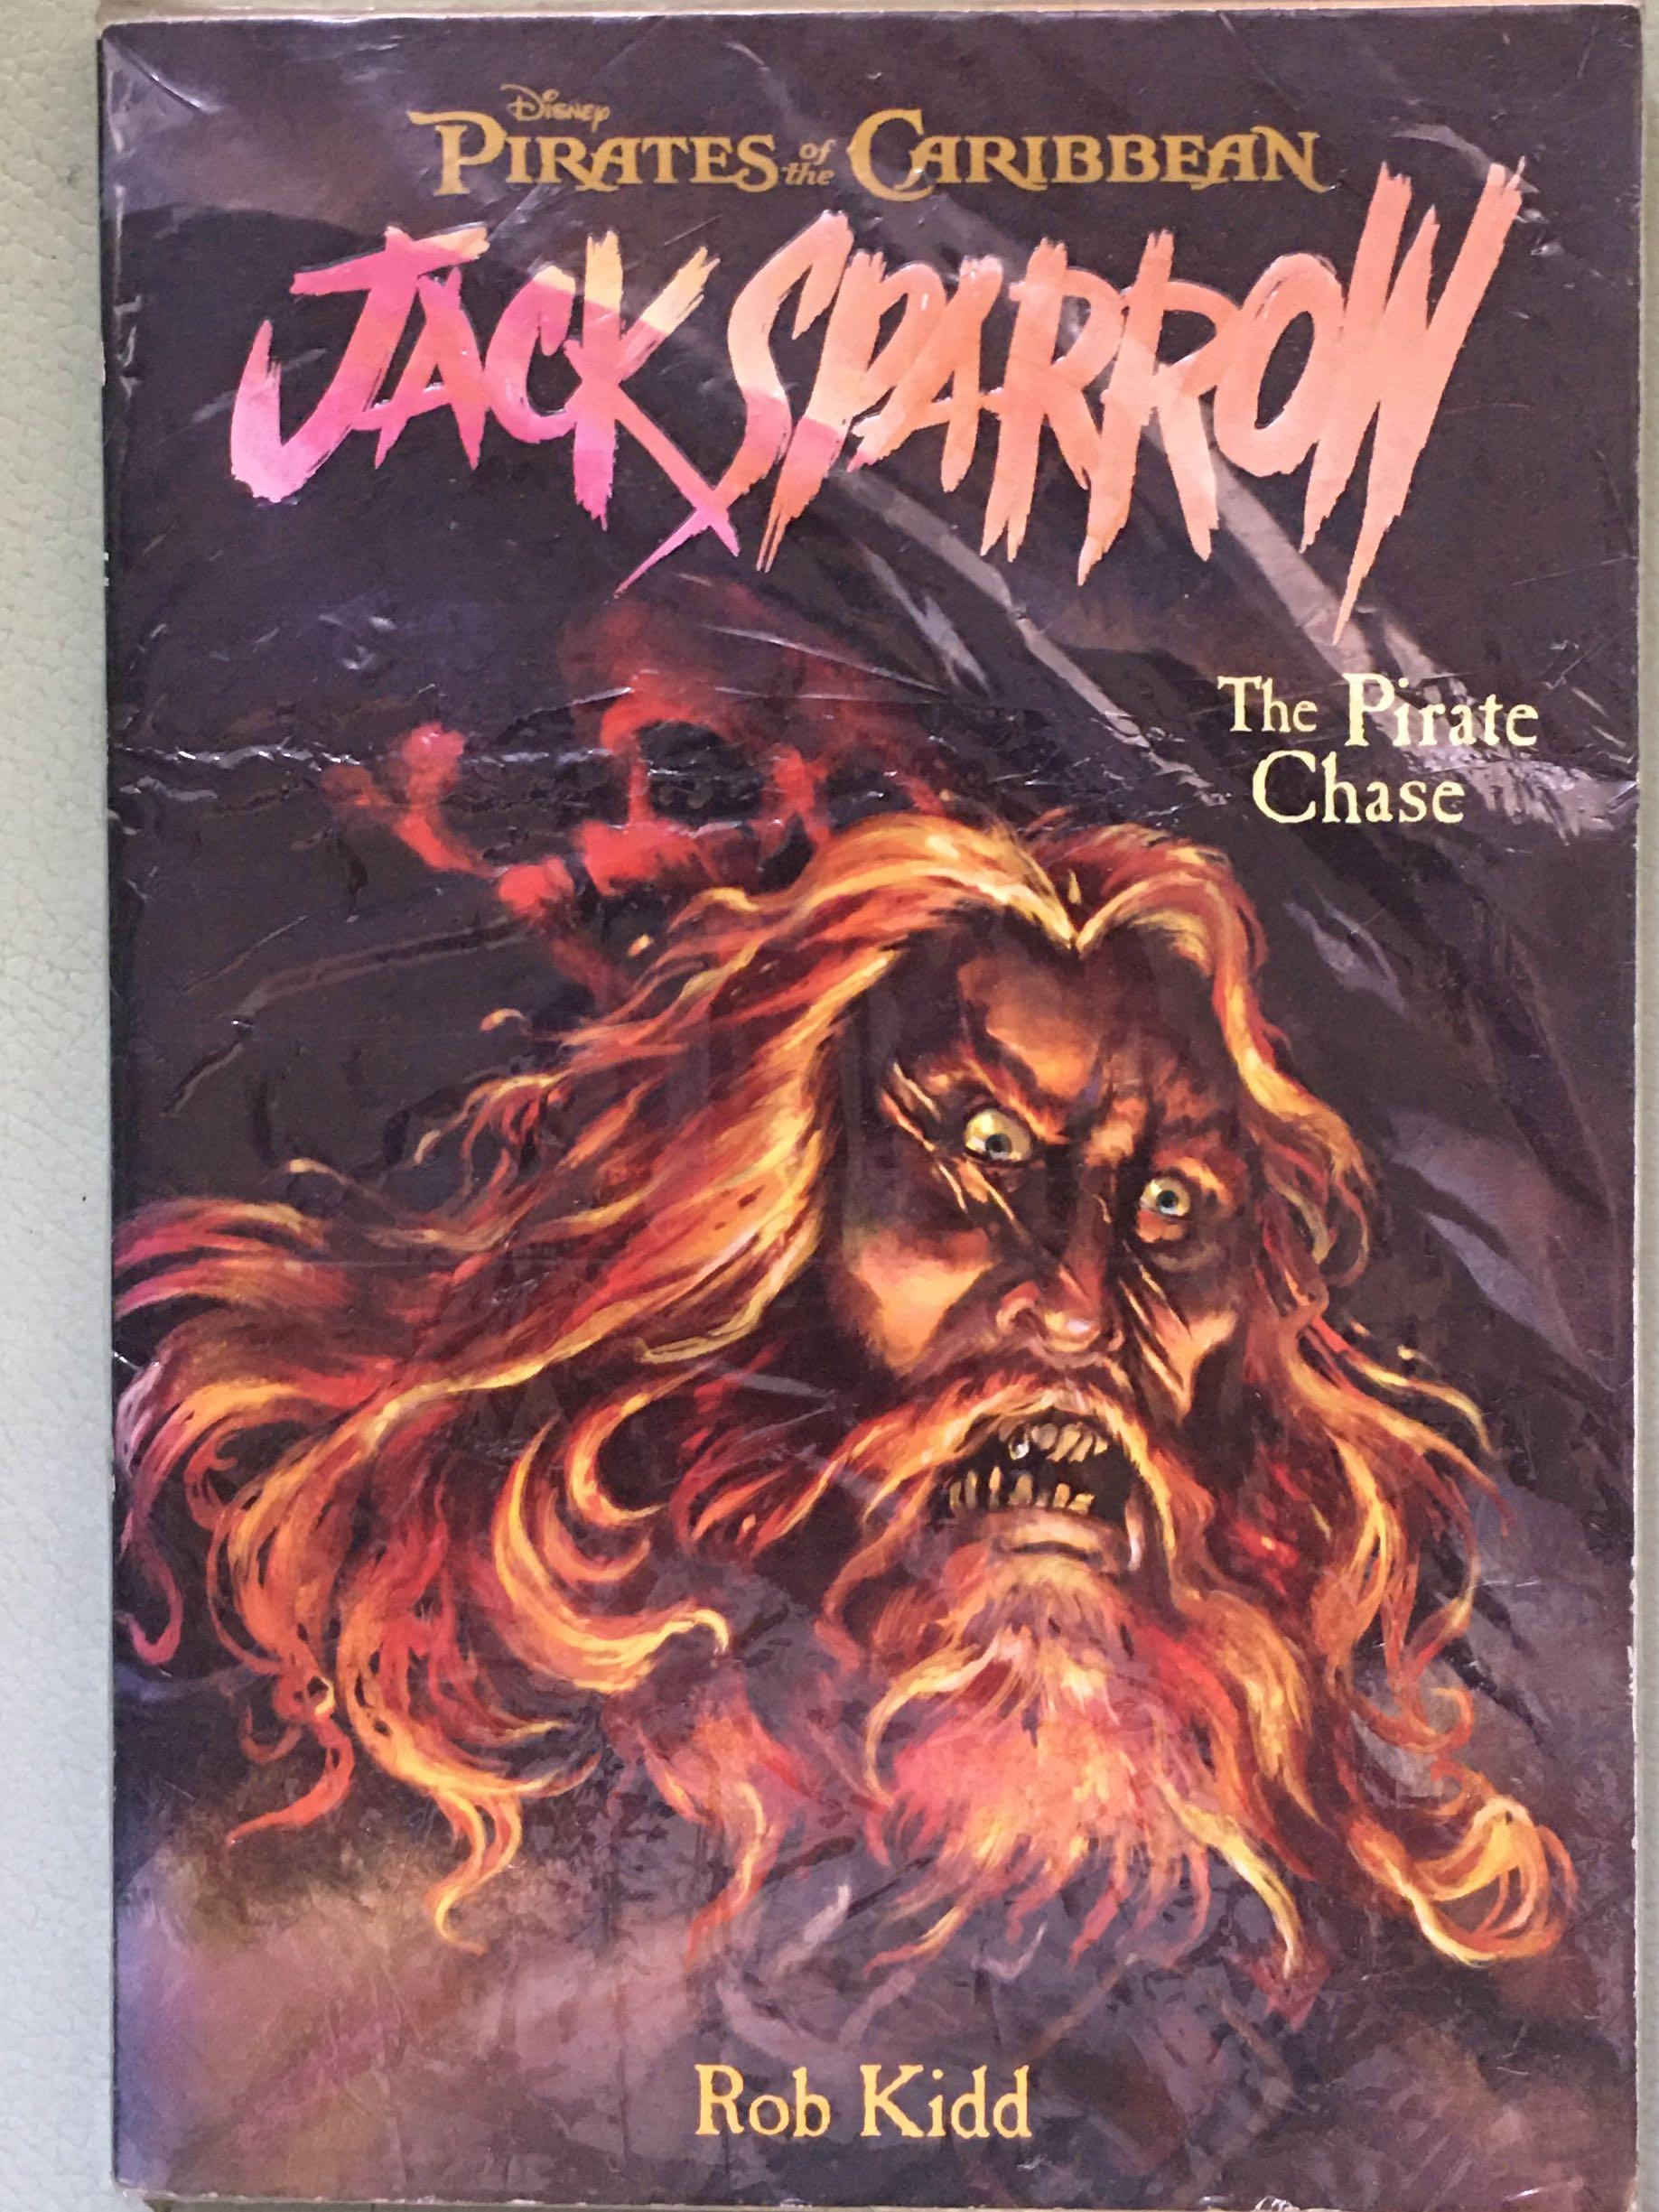 ROB KIDD_Jack Sparrow Vol. 3: The Pirate Chase_Pirates of the Caribbean